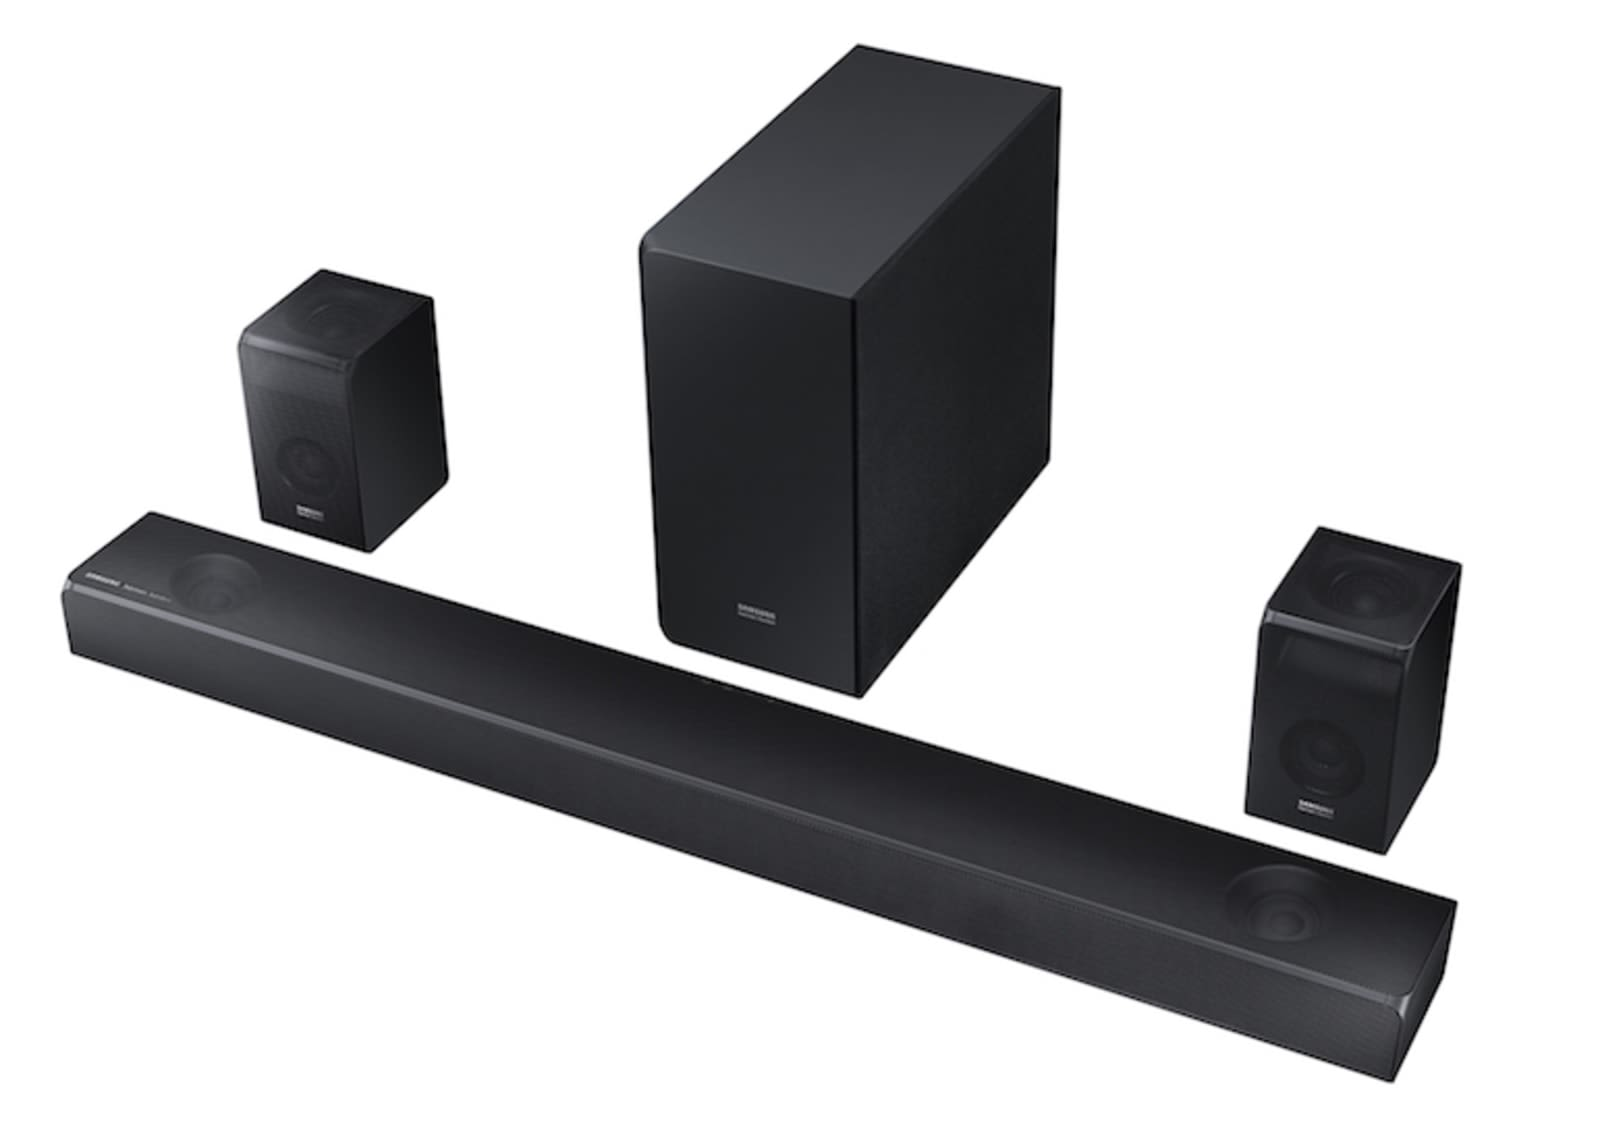 Samsungs Harman Unveils Its New Premium Soundbar Lineup Kardon Go Play Plus Pay Original Samsung